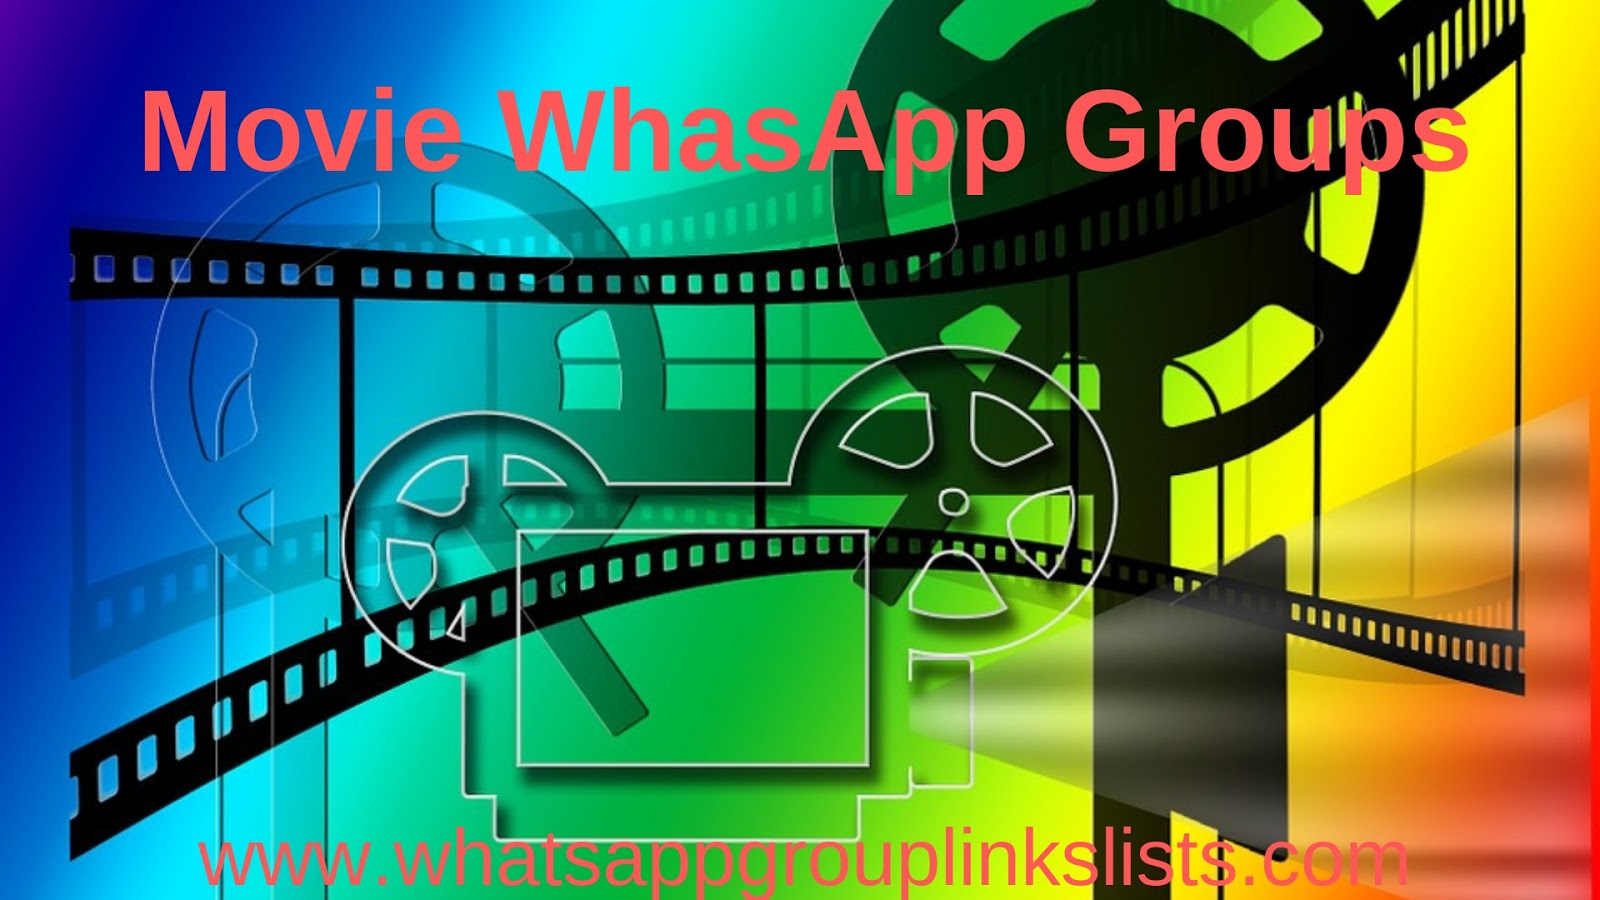 Join Movie WhatsApp Group Links list